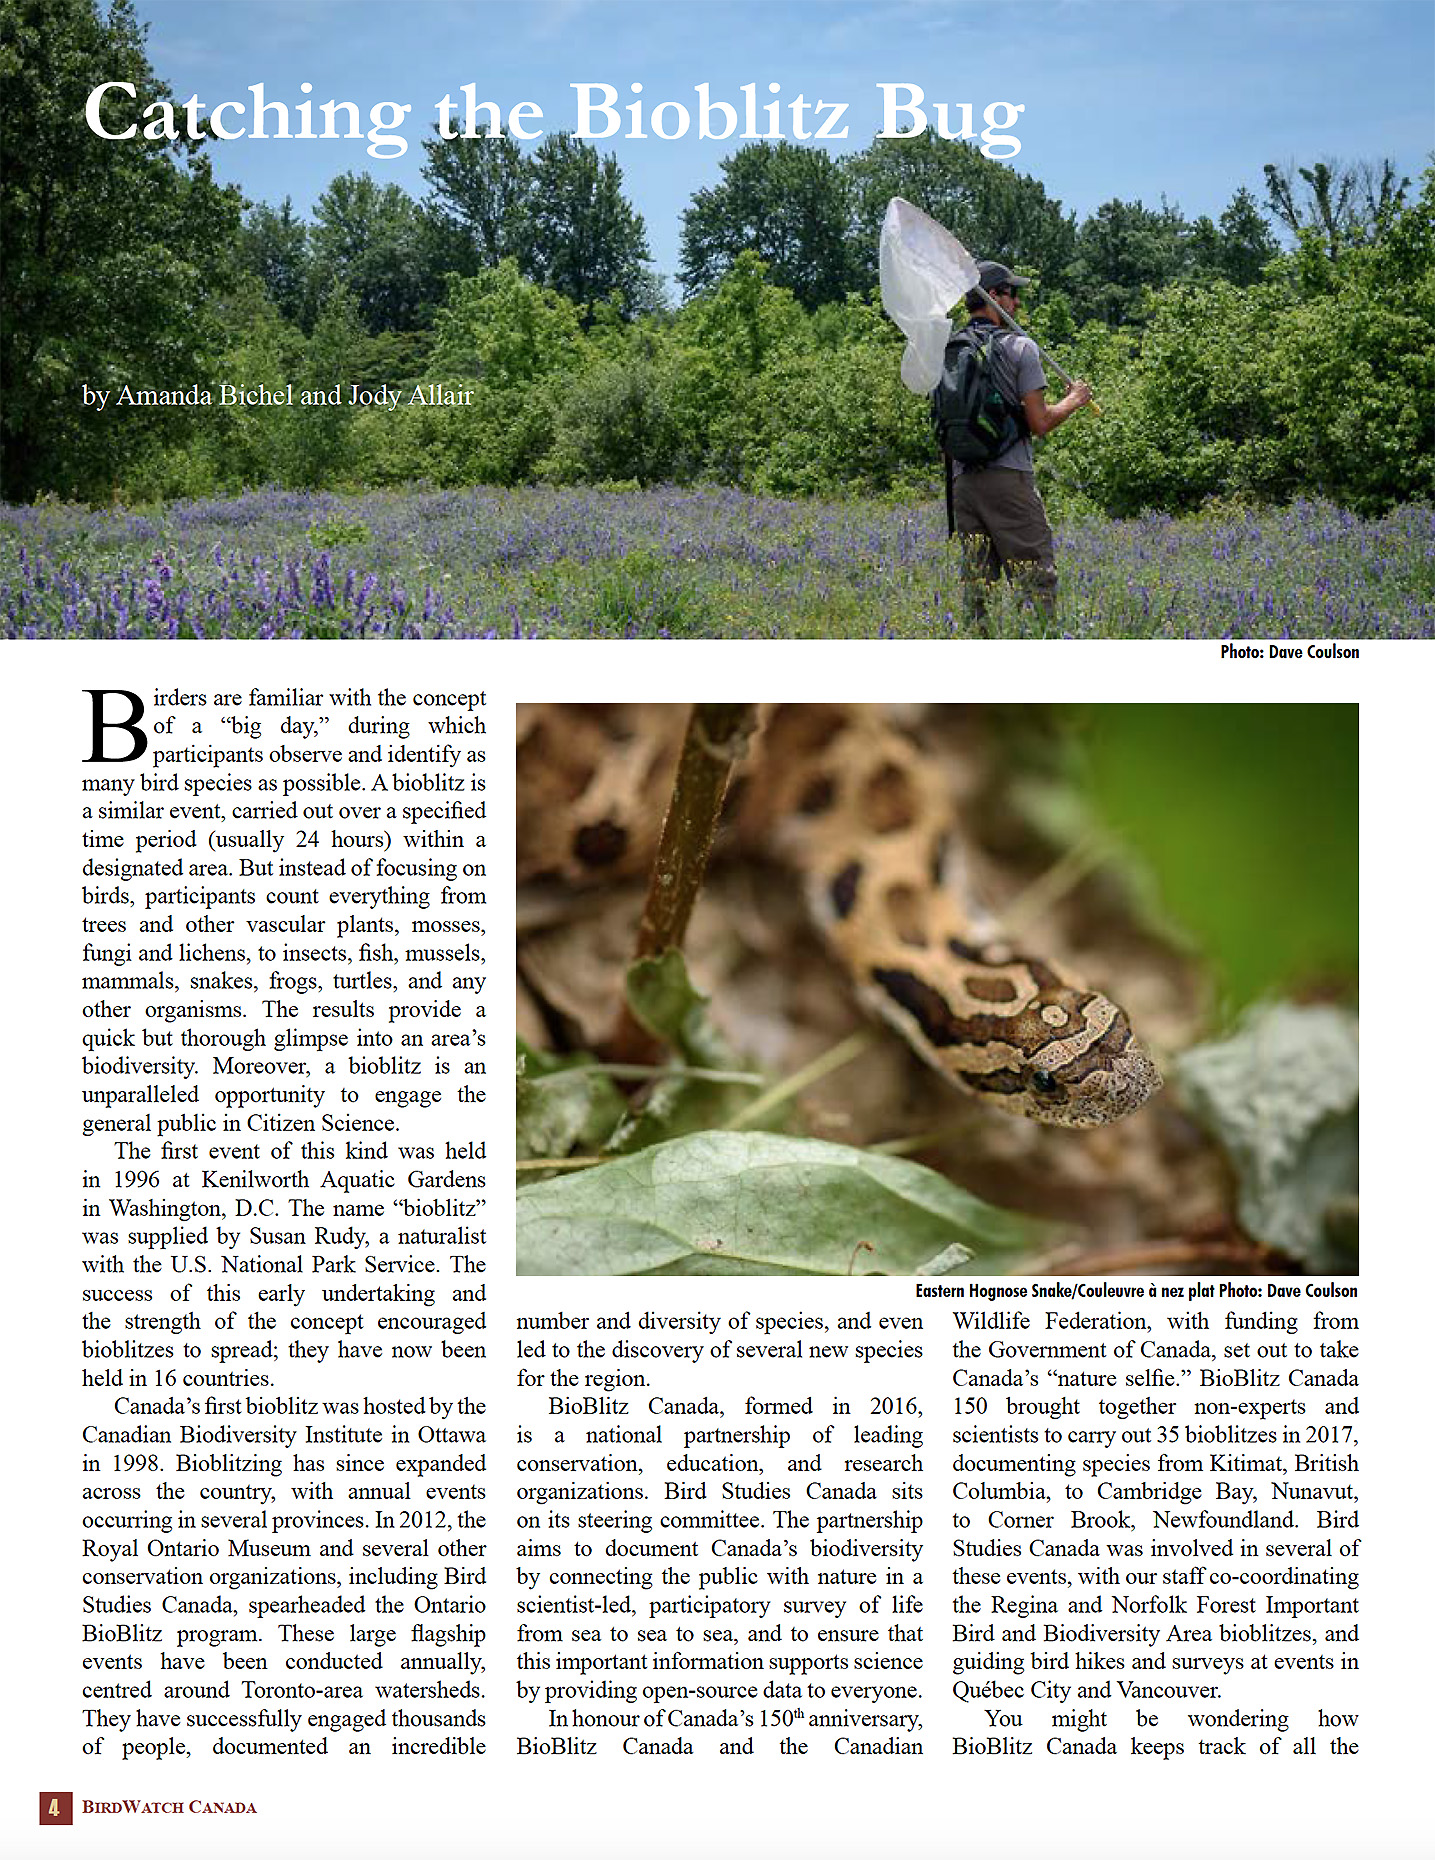 Bird Studies Canada newsletter on bioblitz